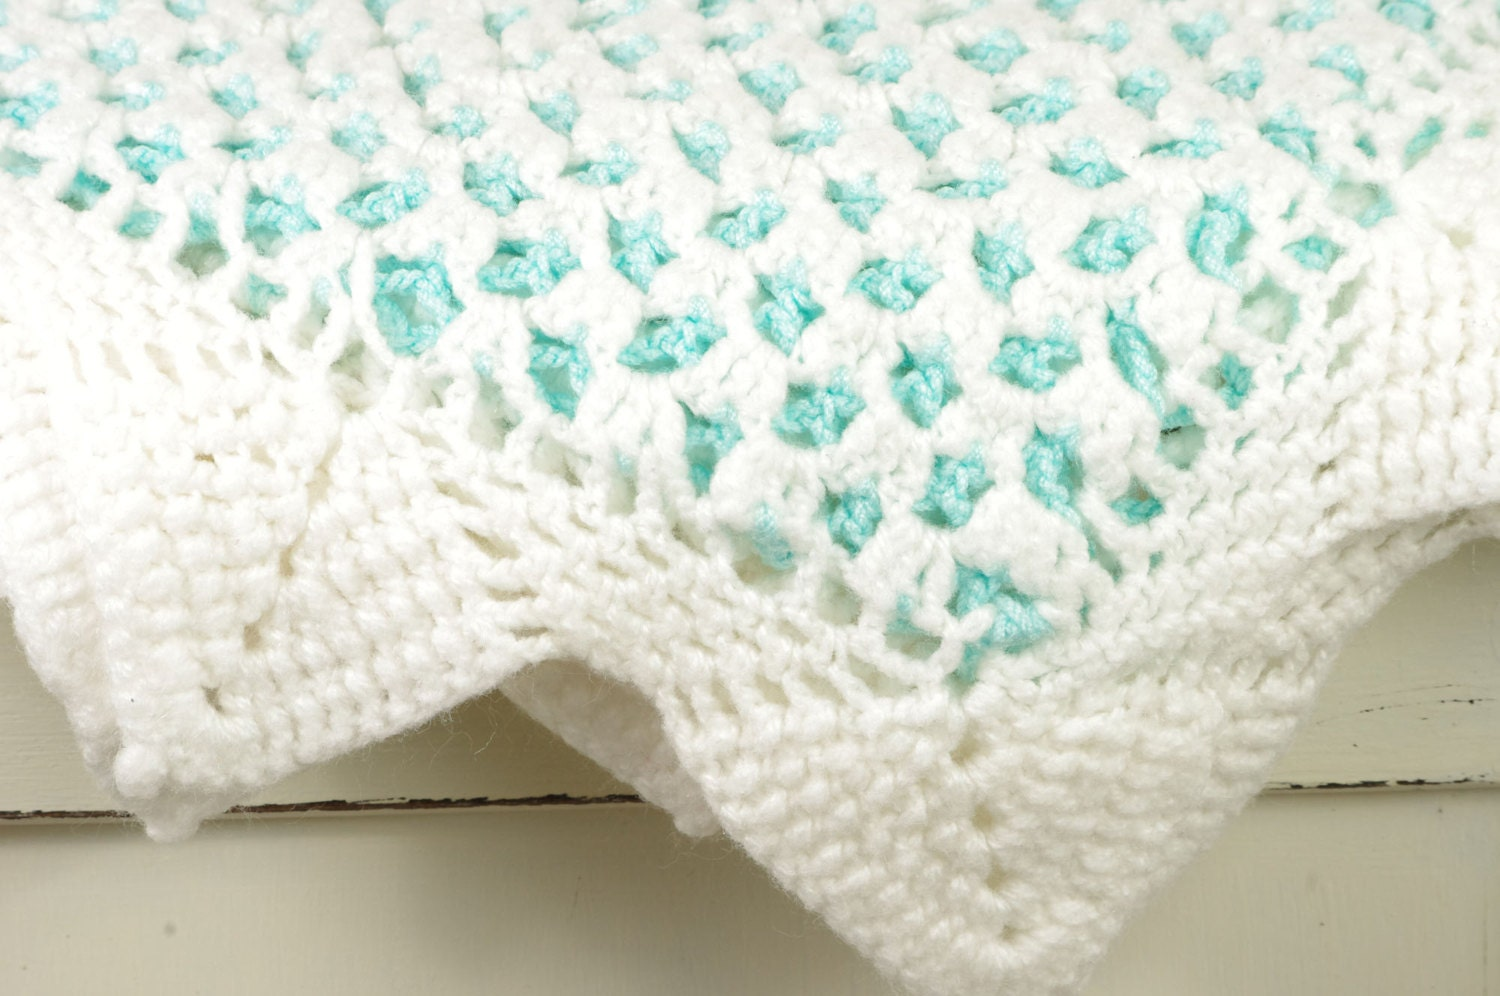 Vintage White and Aqua Blue Crocheted Blanket- Perfect for a Nursery or Newborn Photos